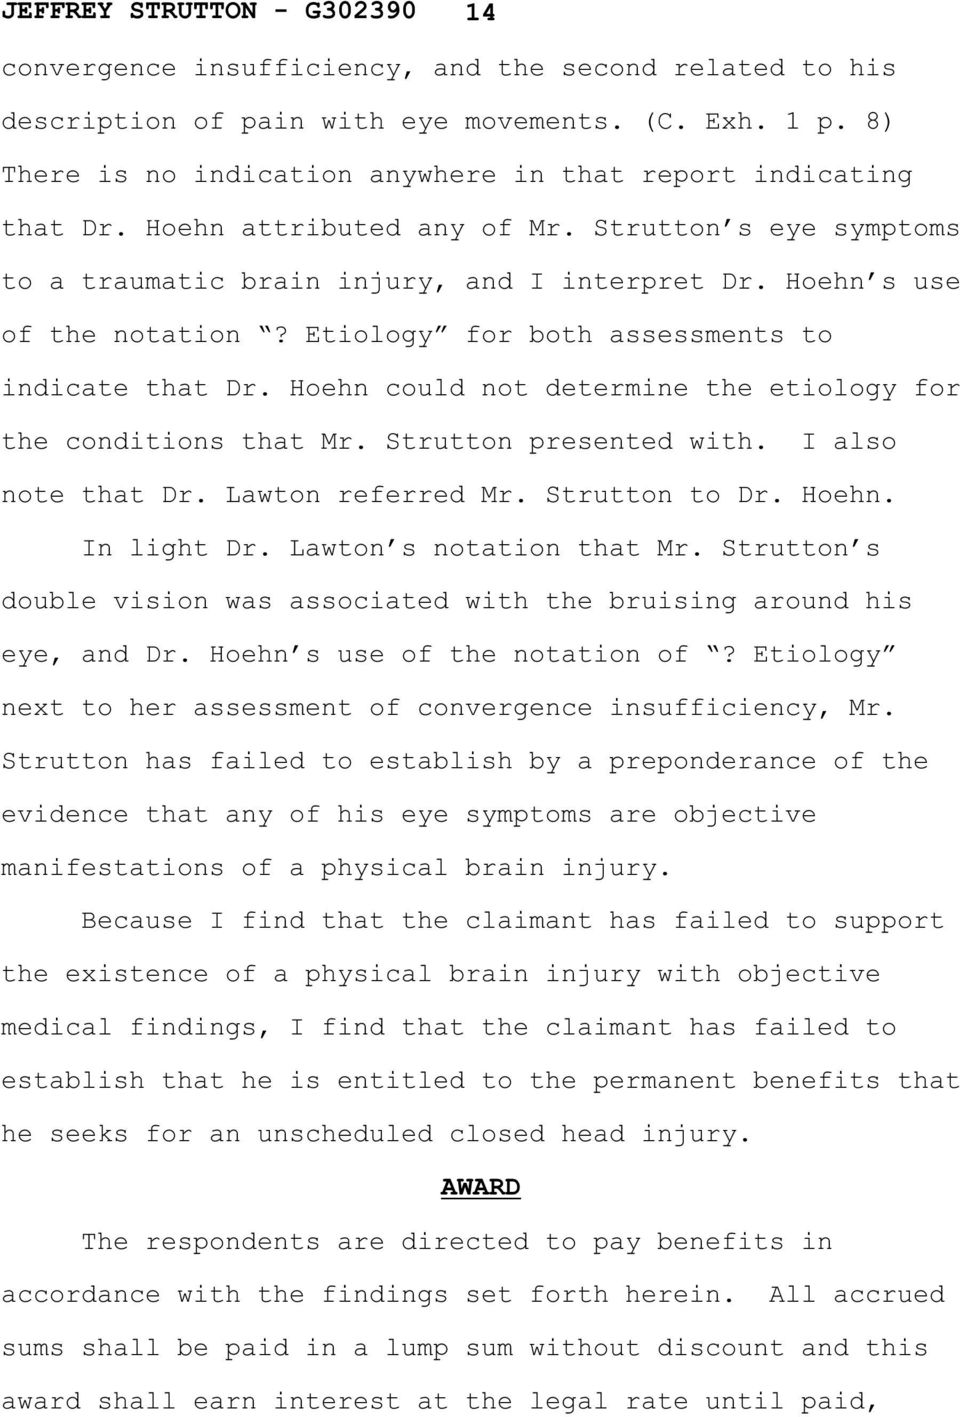 Hoehn could not determine the etiology for the conditions that Mr. Strutton presented with. I also note that Dr. Lawton referred Mr. Strutton to Dr. Hoehn. In light Dr. Lawton s notation that Mr.